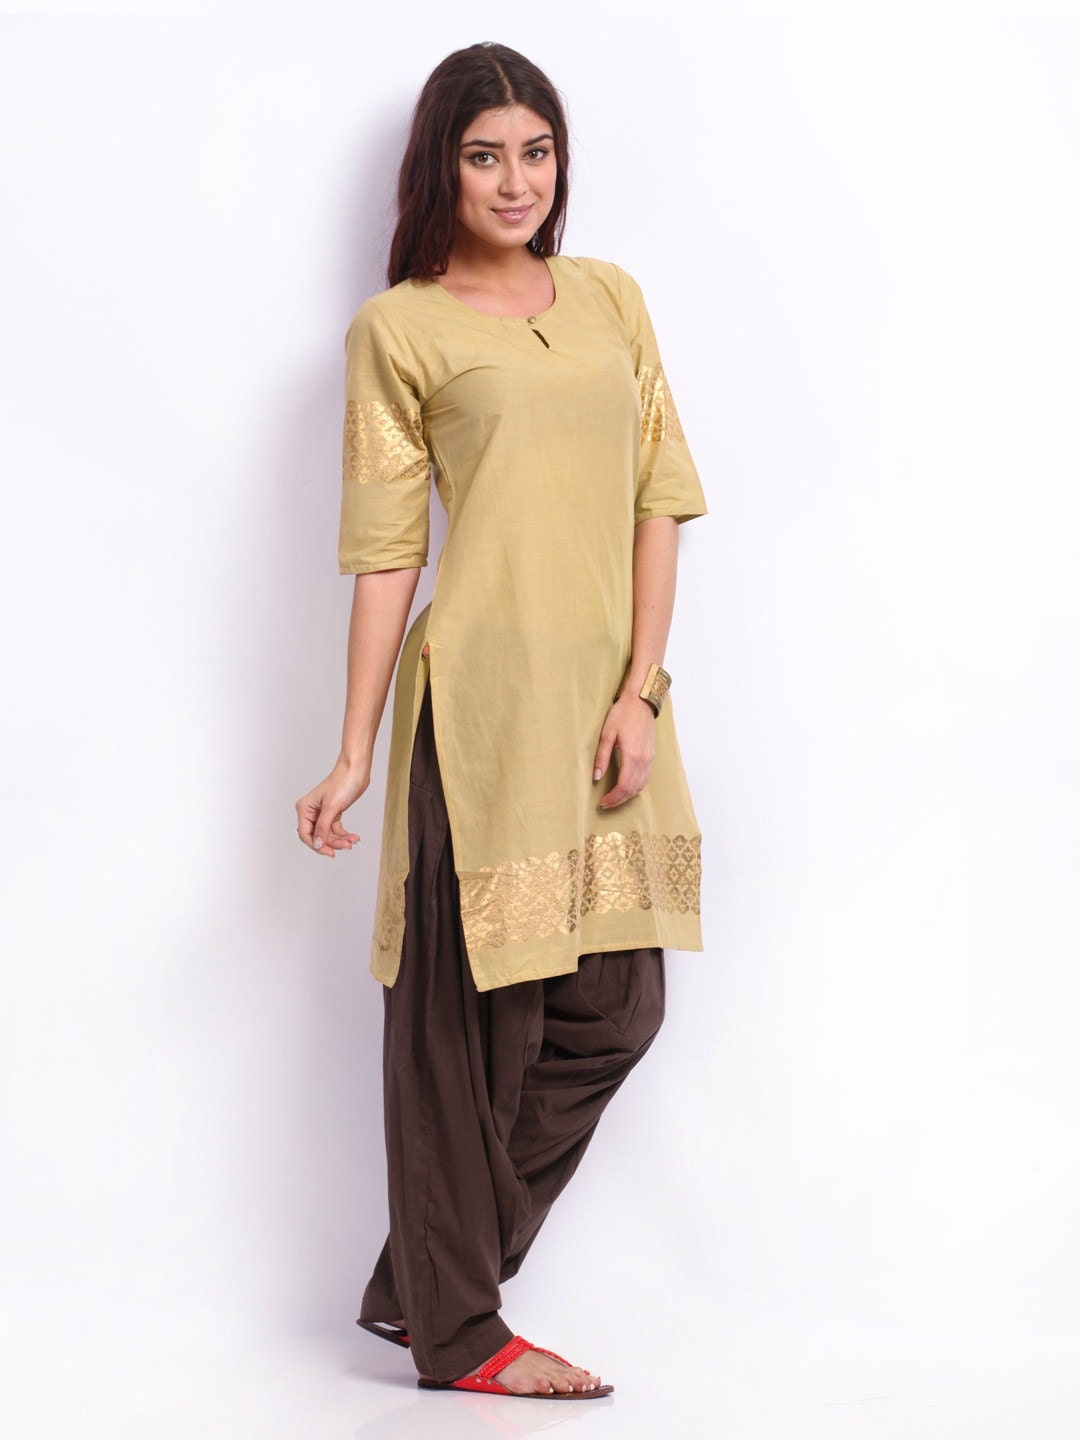 Unique Heres List Of Top 10 Best Kurti Brands In India That We Have Rounded Up  Khadi Etc With Modern Designs And Create Fashion Clothing For Todays Women They Have 53 Exclusive Retail Showrooms In Tier1 And Tier 2 Cities In Country